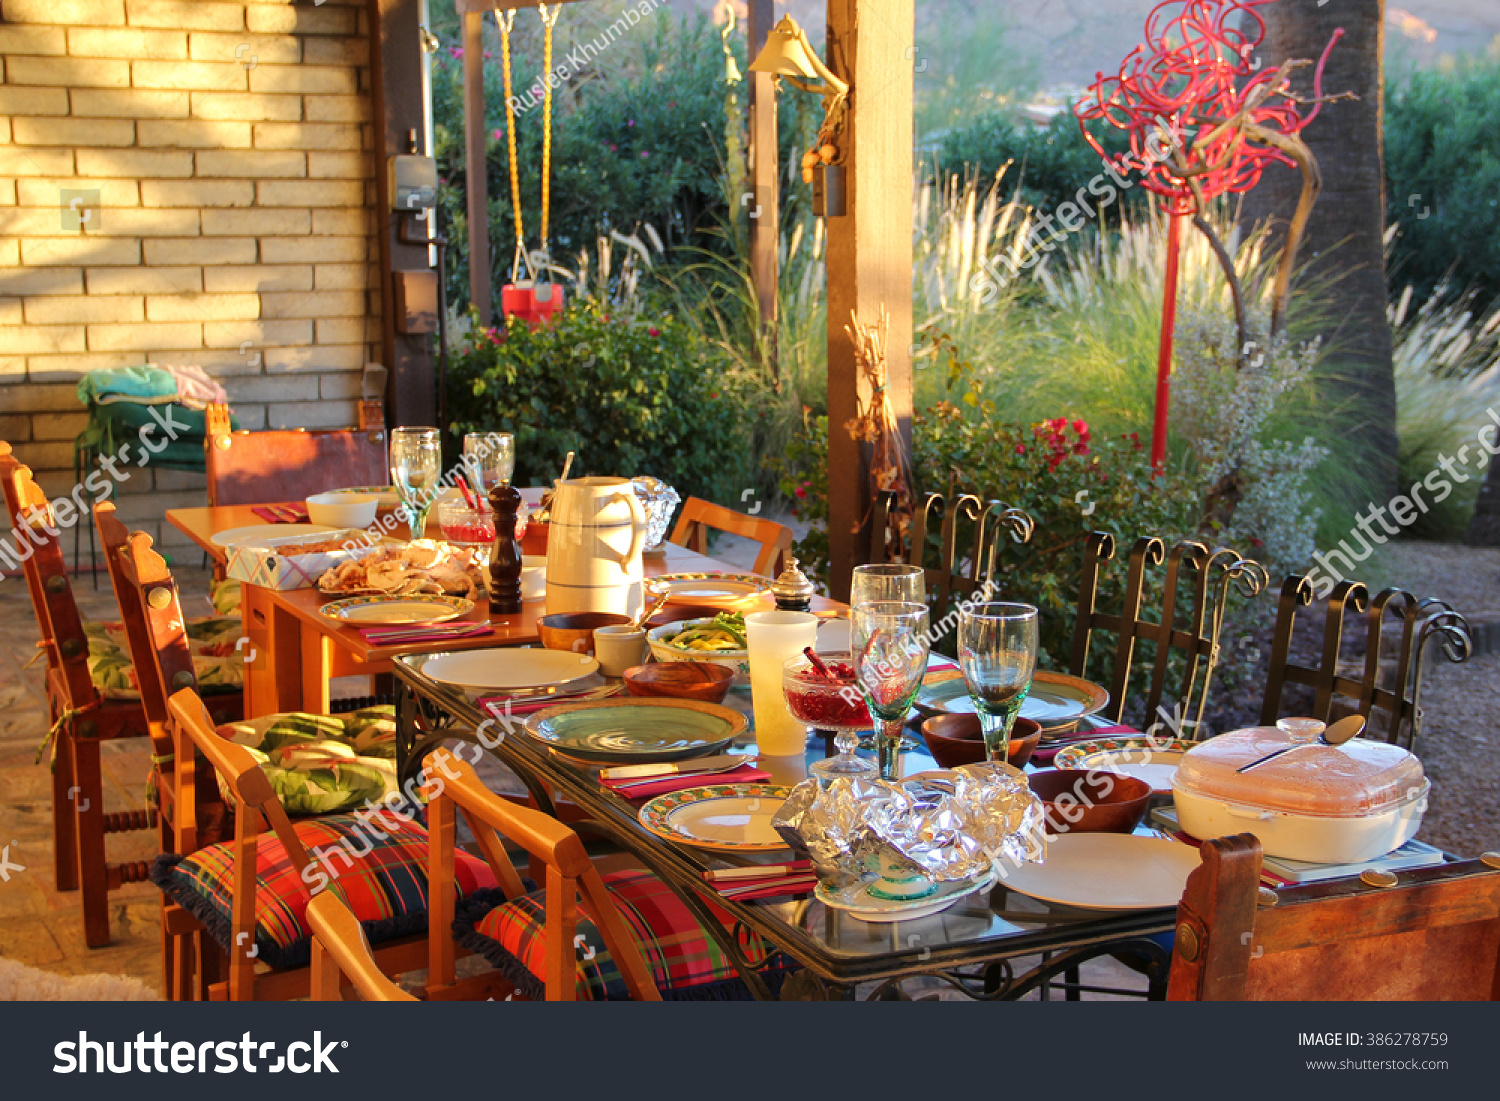 Dining table on warm sunny day stock photo 386278759 for Dinner on the terrace